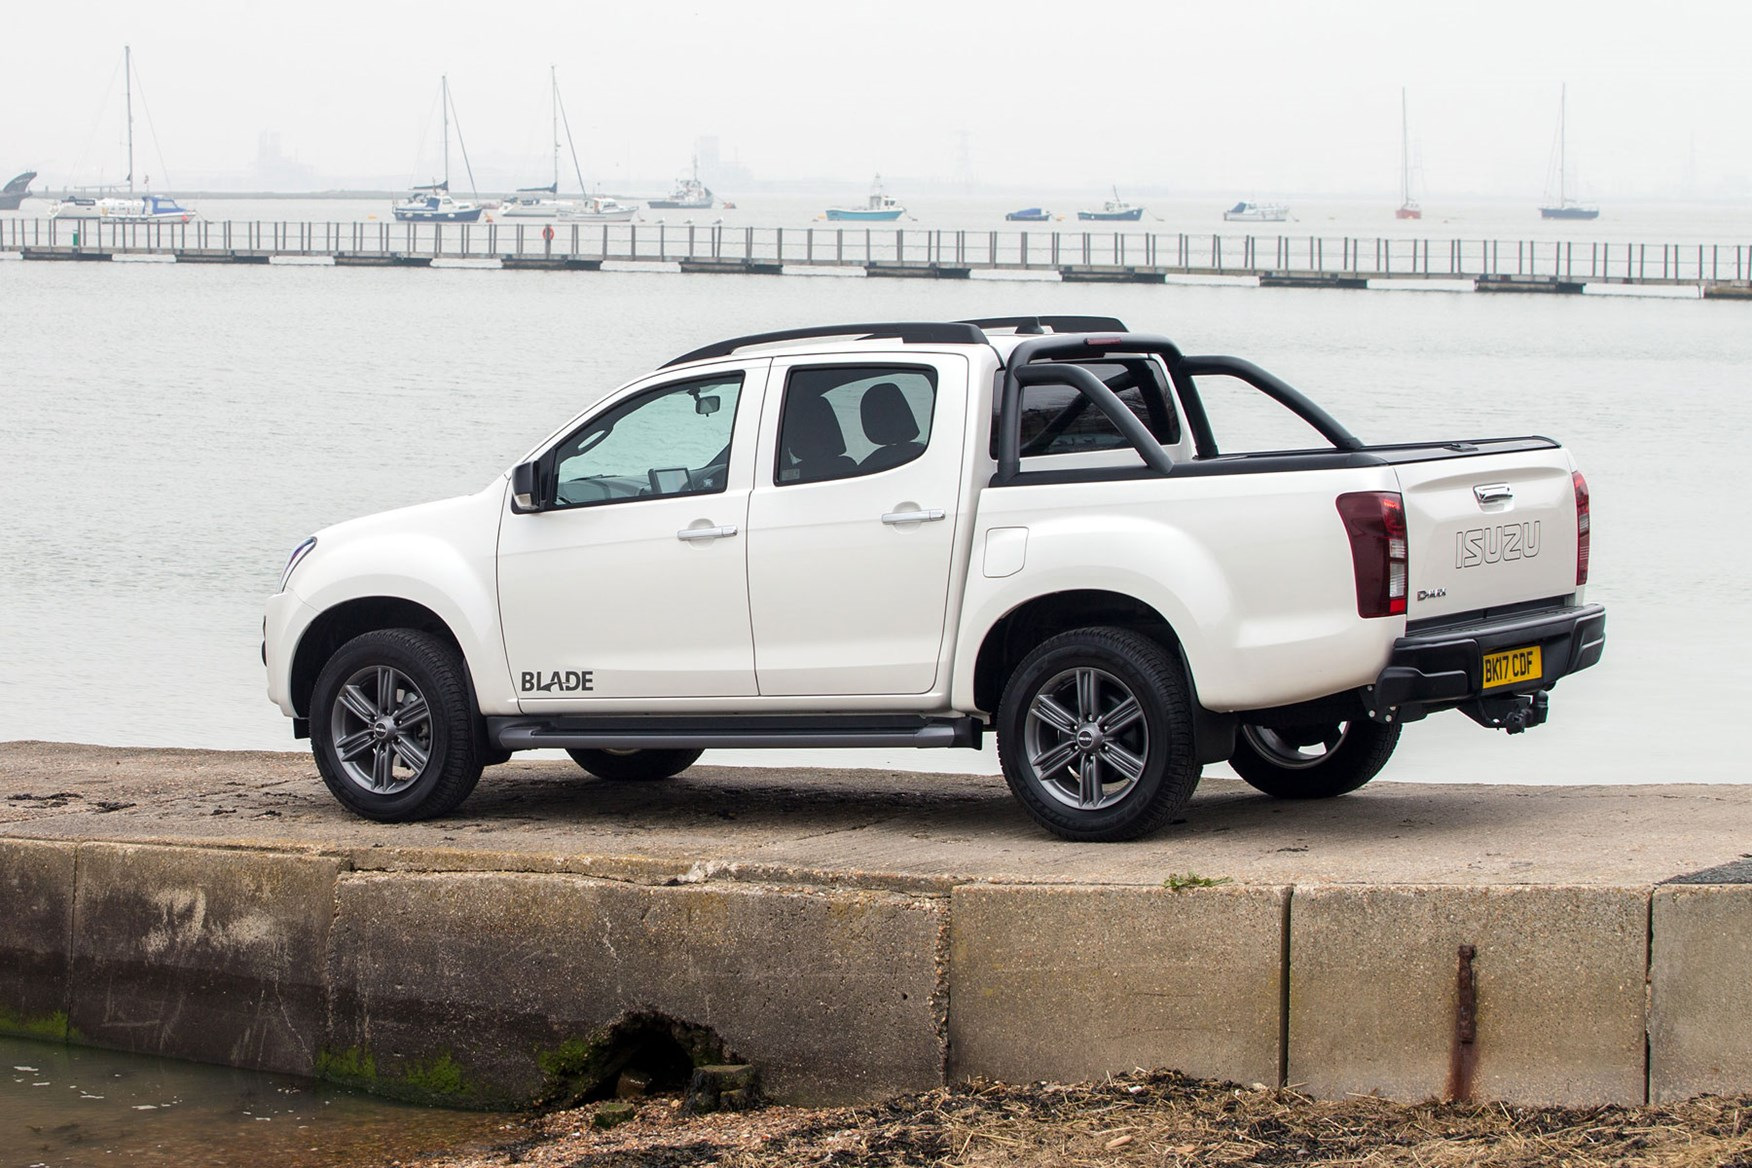 Isuzu D-Max Blade 1.9 review - side view, parked by water